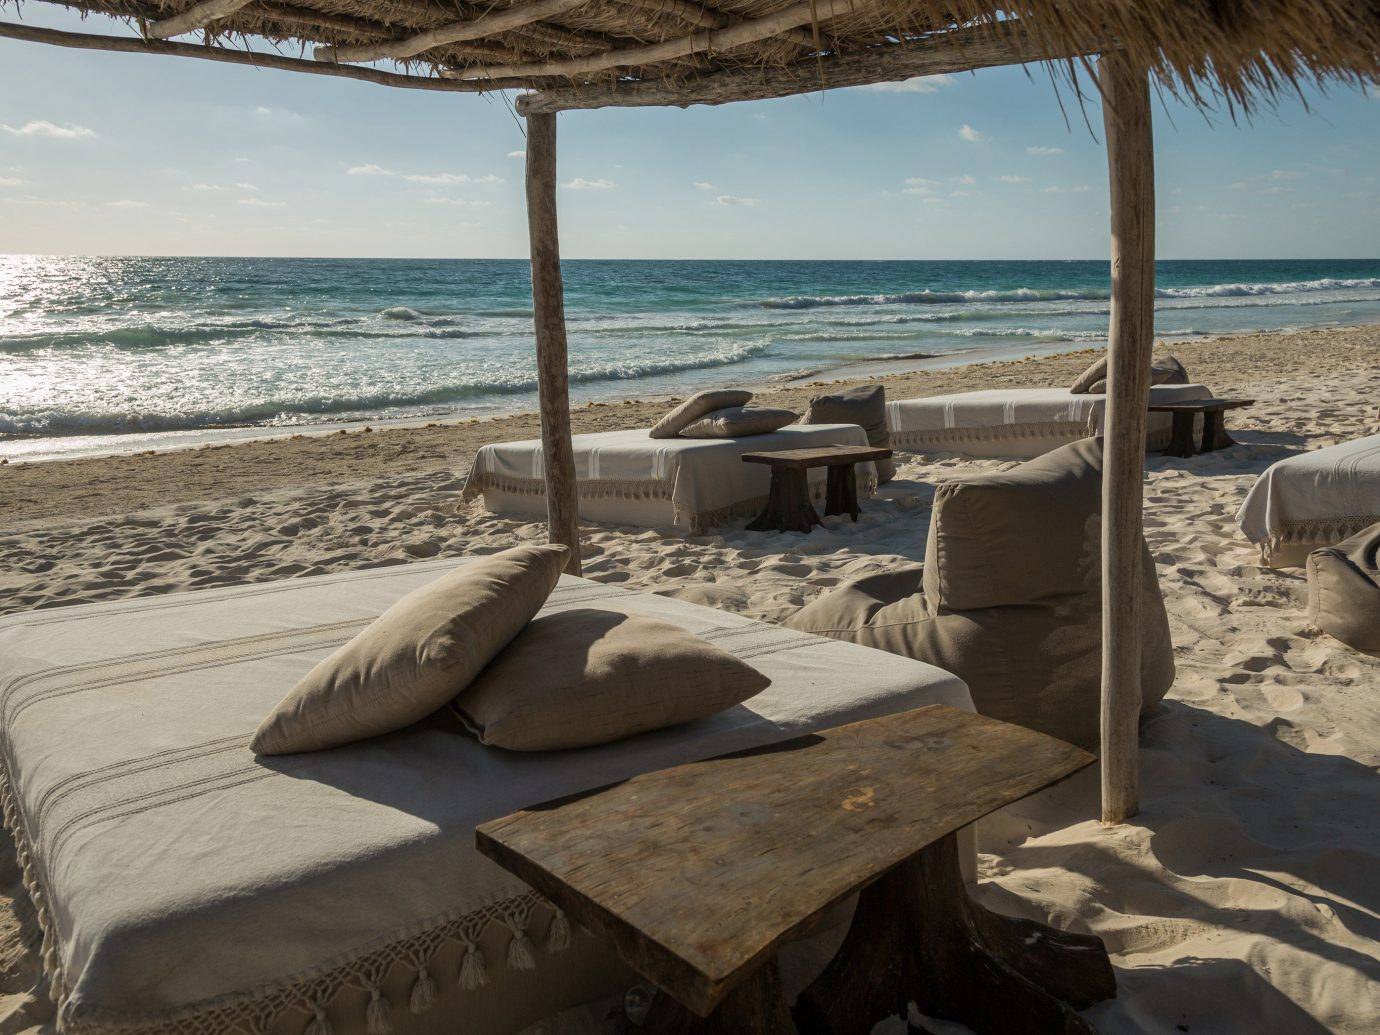 Boutique Hotels Hotels Mexico Tulum Sea Beach vacation Resort real estate sand